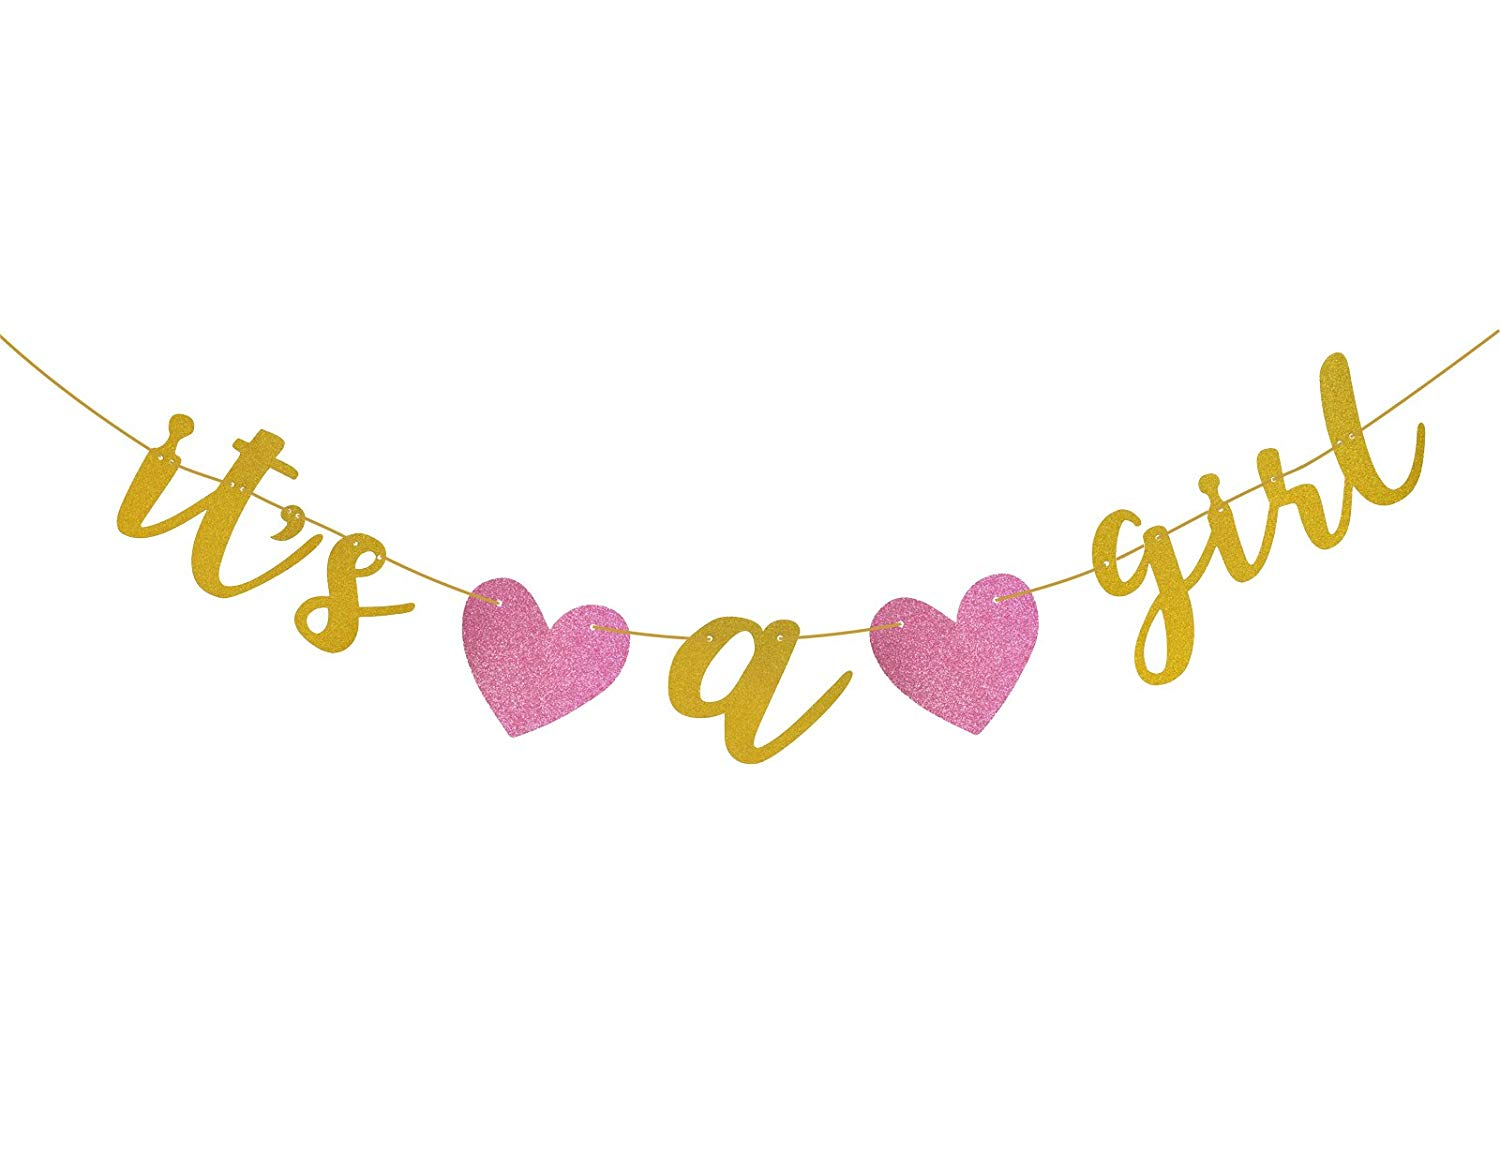 Gold clip art heart april 21 2018 clipart graphic transparent library Famoby Gold Glittery It\'s a Girl Banner for Baby Shower Party Decorations graphic transparent library